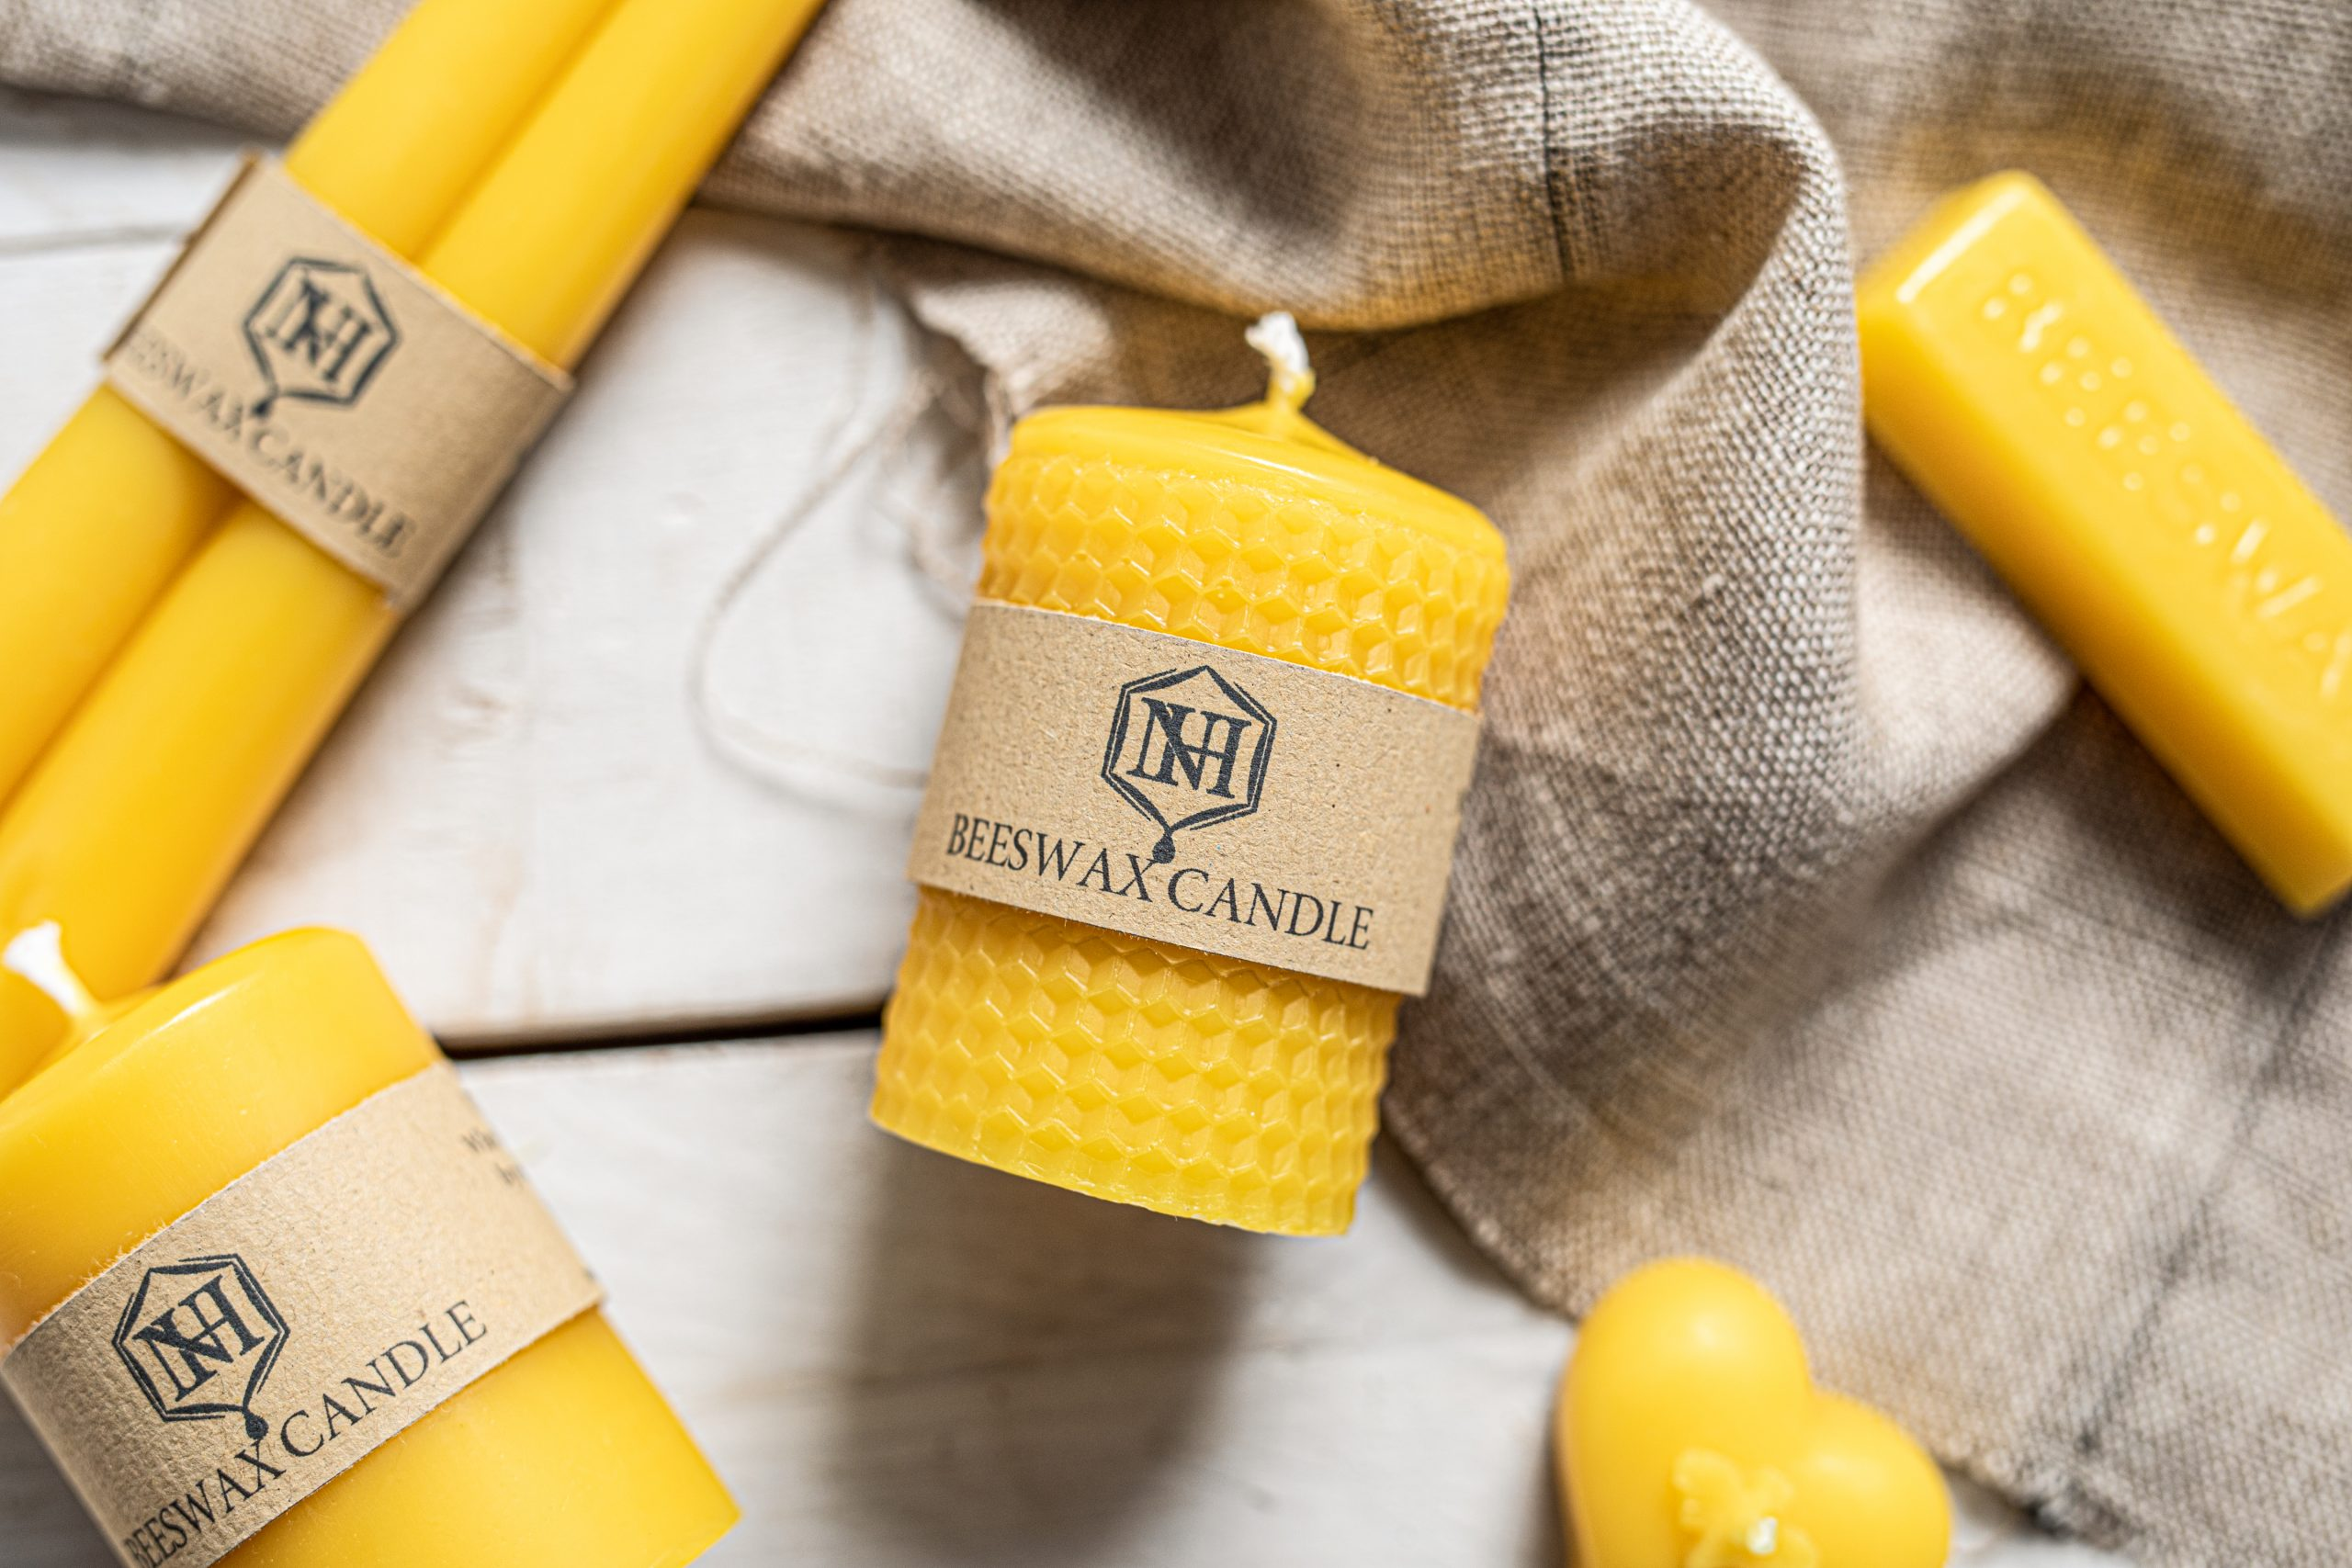 Beeswax Candles For Sale